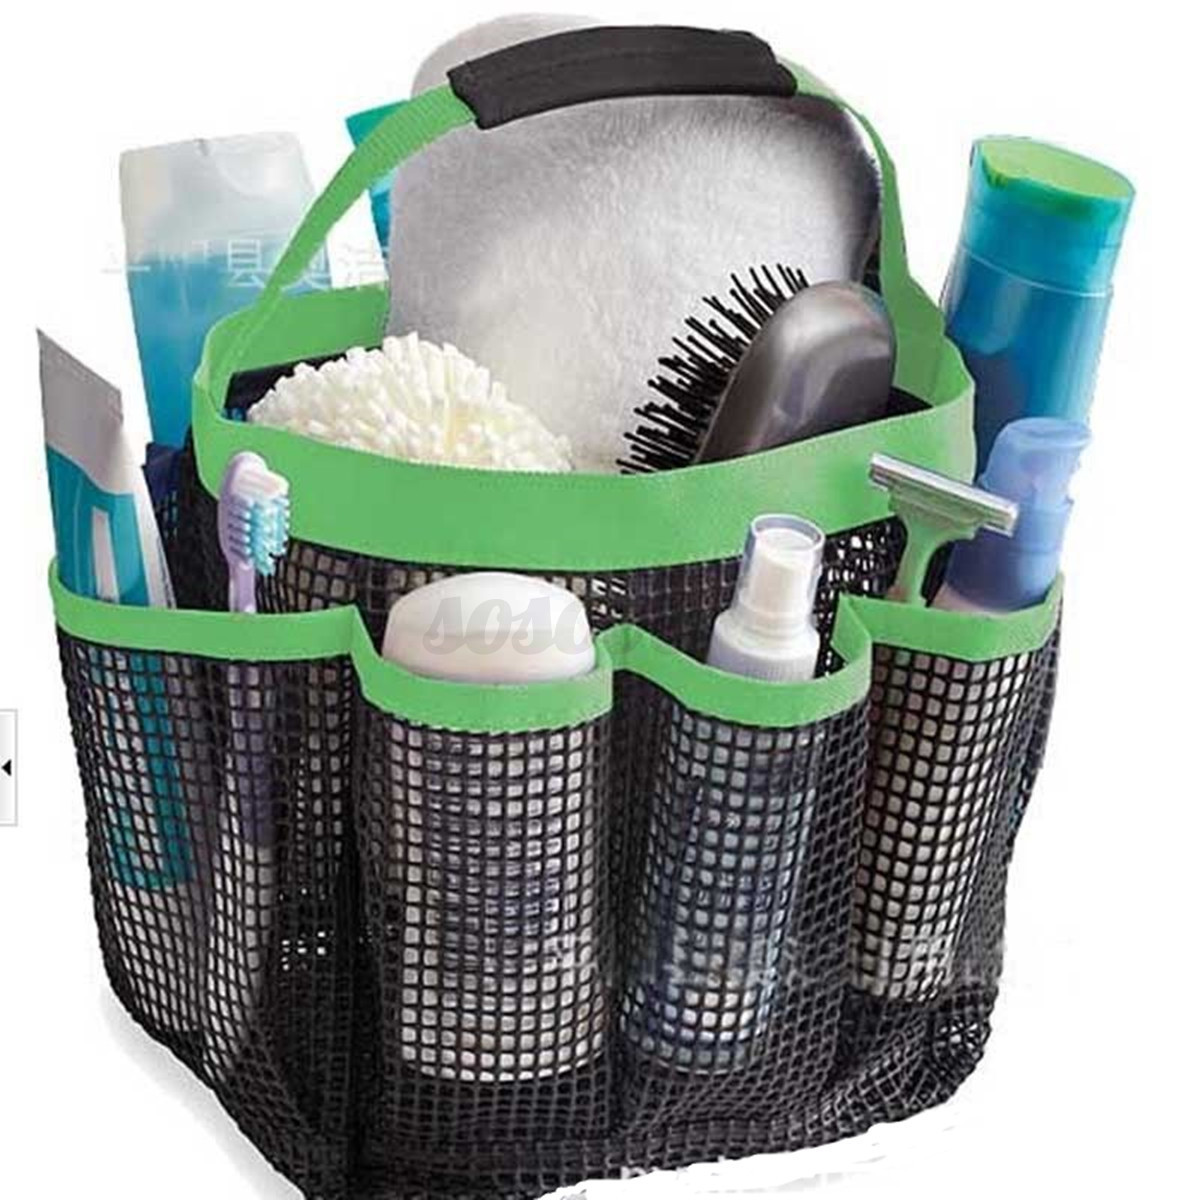 portable shower caddy - 28 images - shower caddy mesh 8 pocket ...